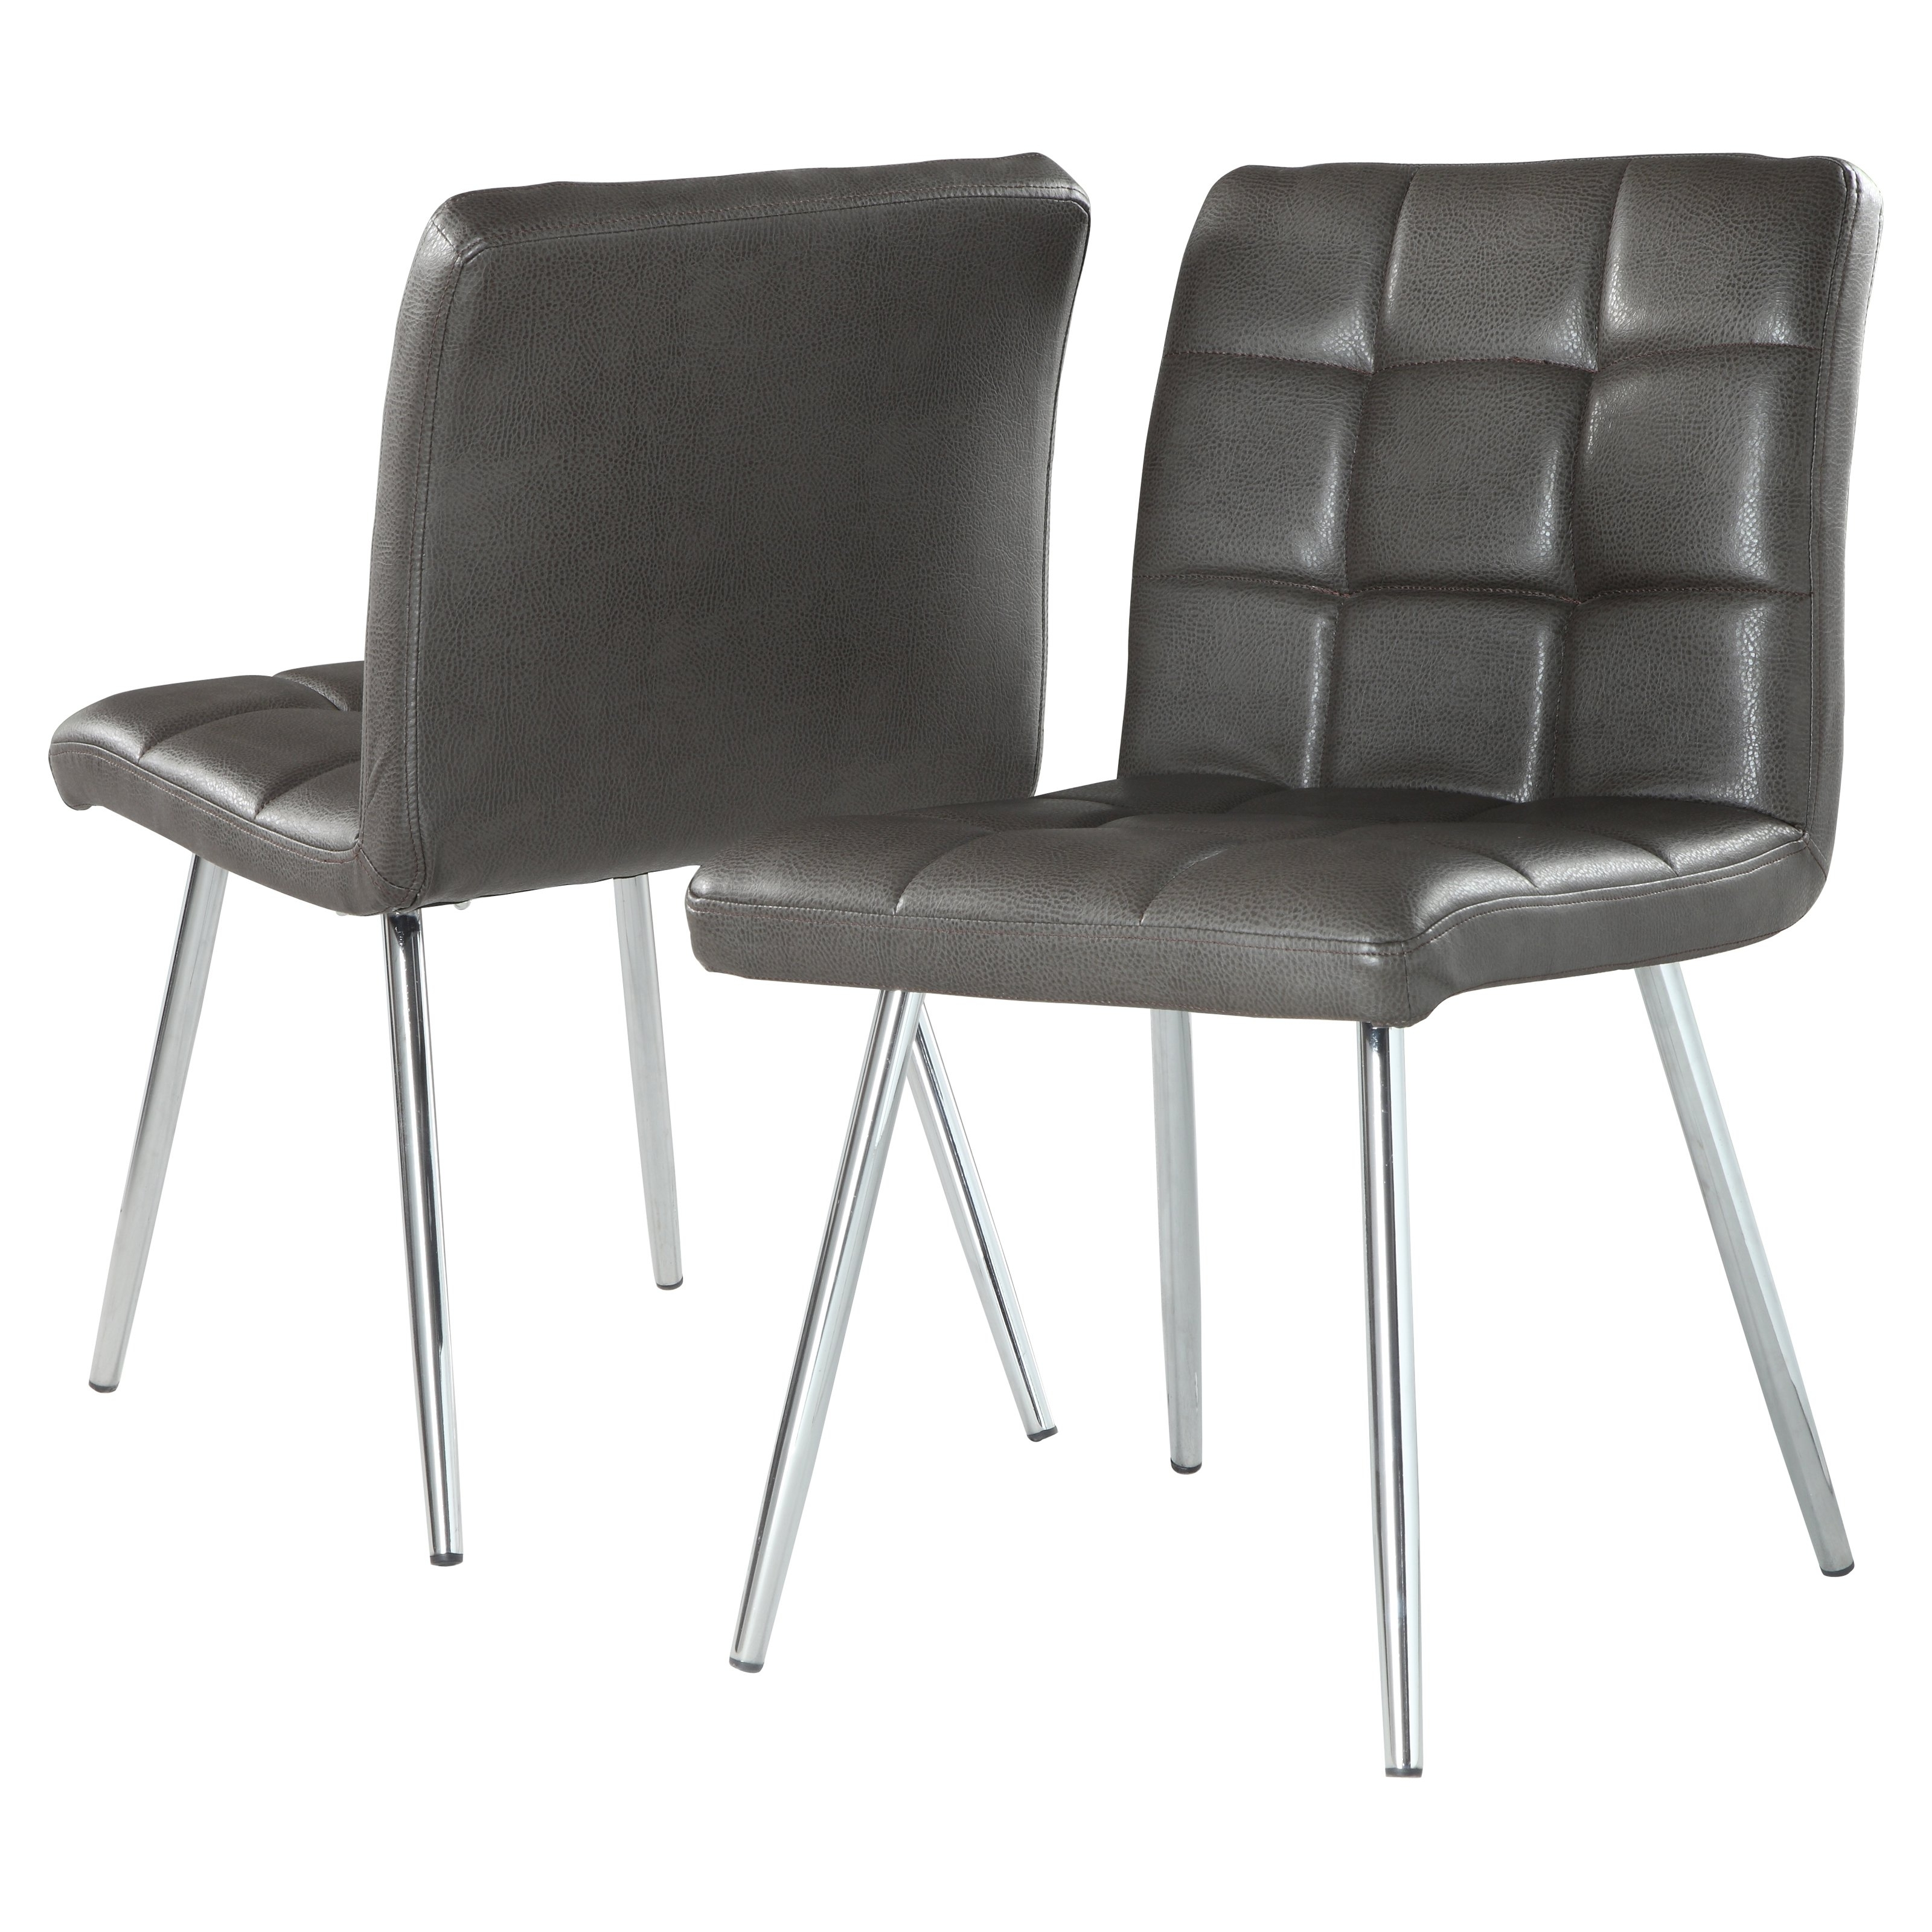 "Monarch Dining Chair 2Pcs / 32""h / Grey Leatherlook / Chrome Within Best And Newest Chrome Dining Chairs (Gallery 1 of 25)"